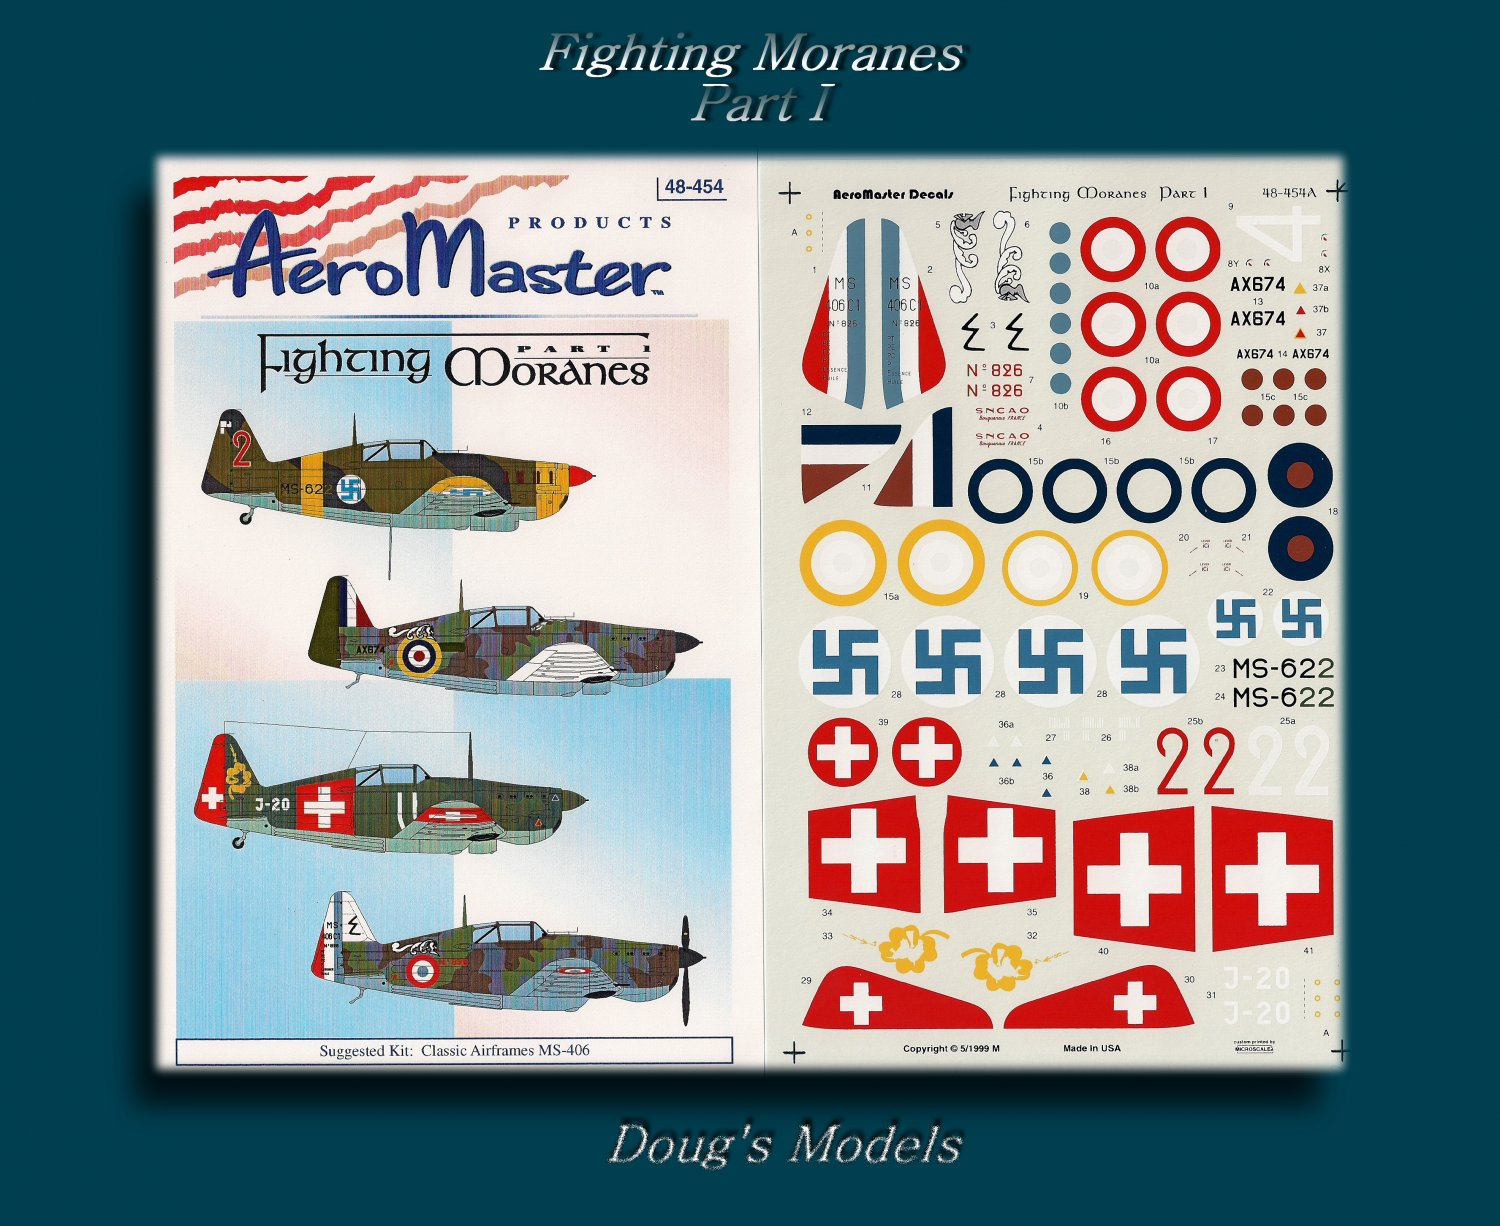 Aeromaster 1/48 Fighting Moranes Part 1